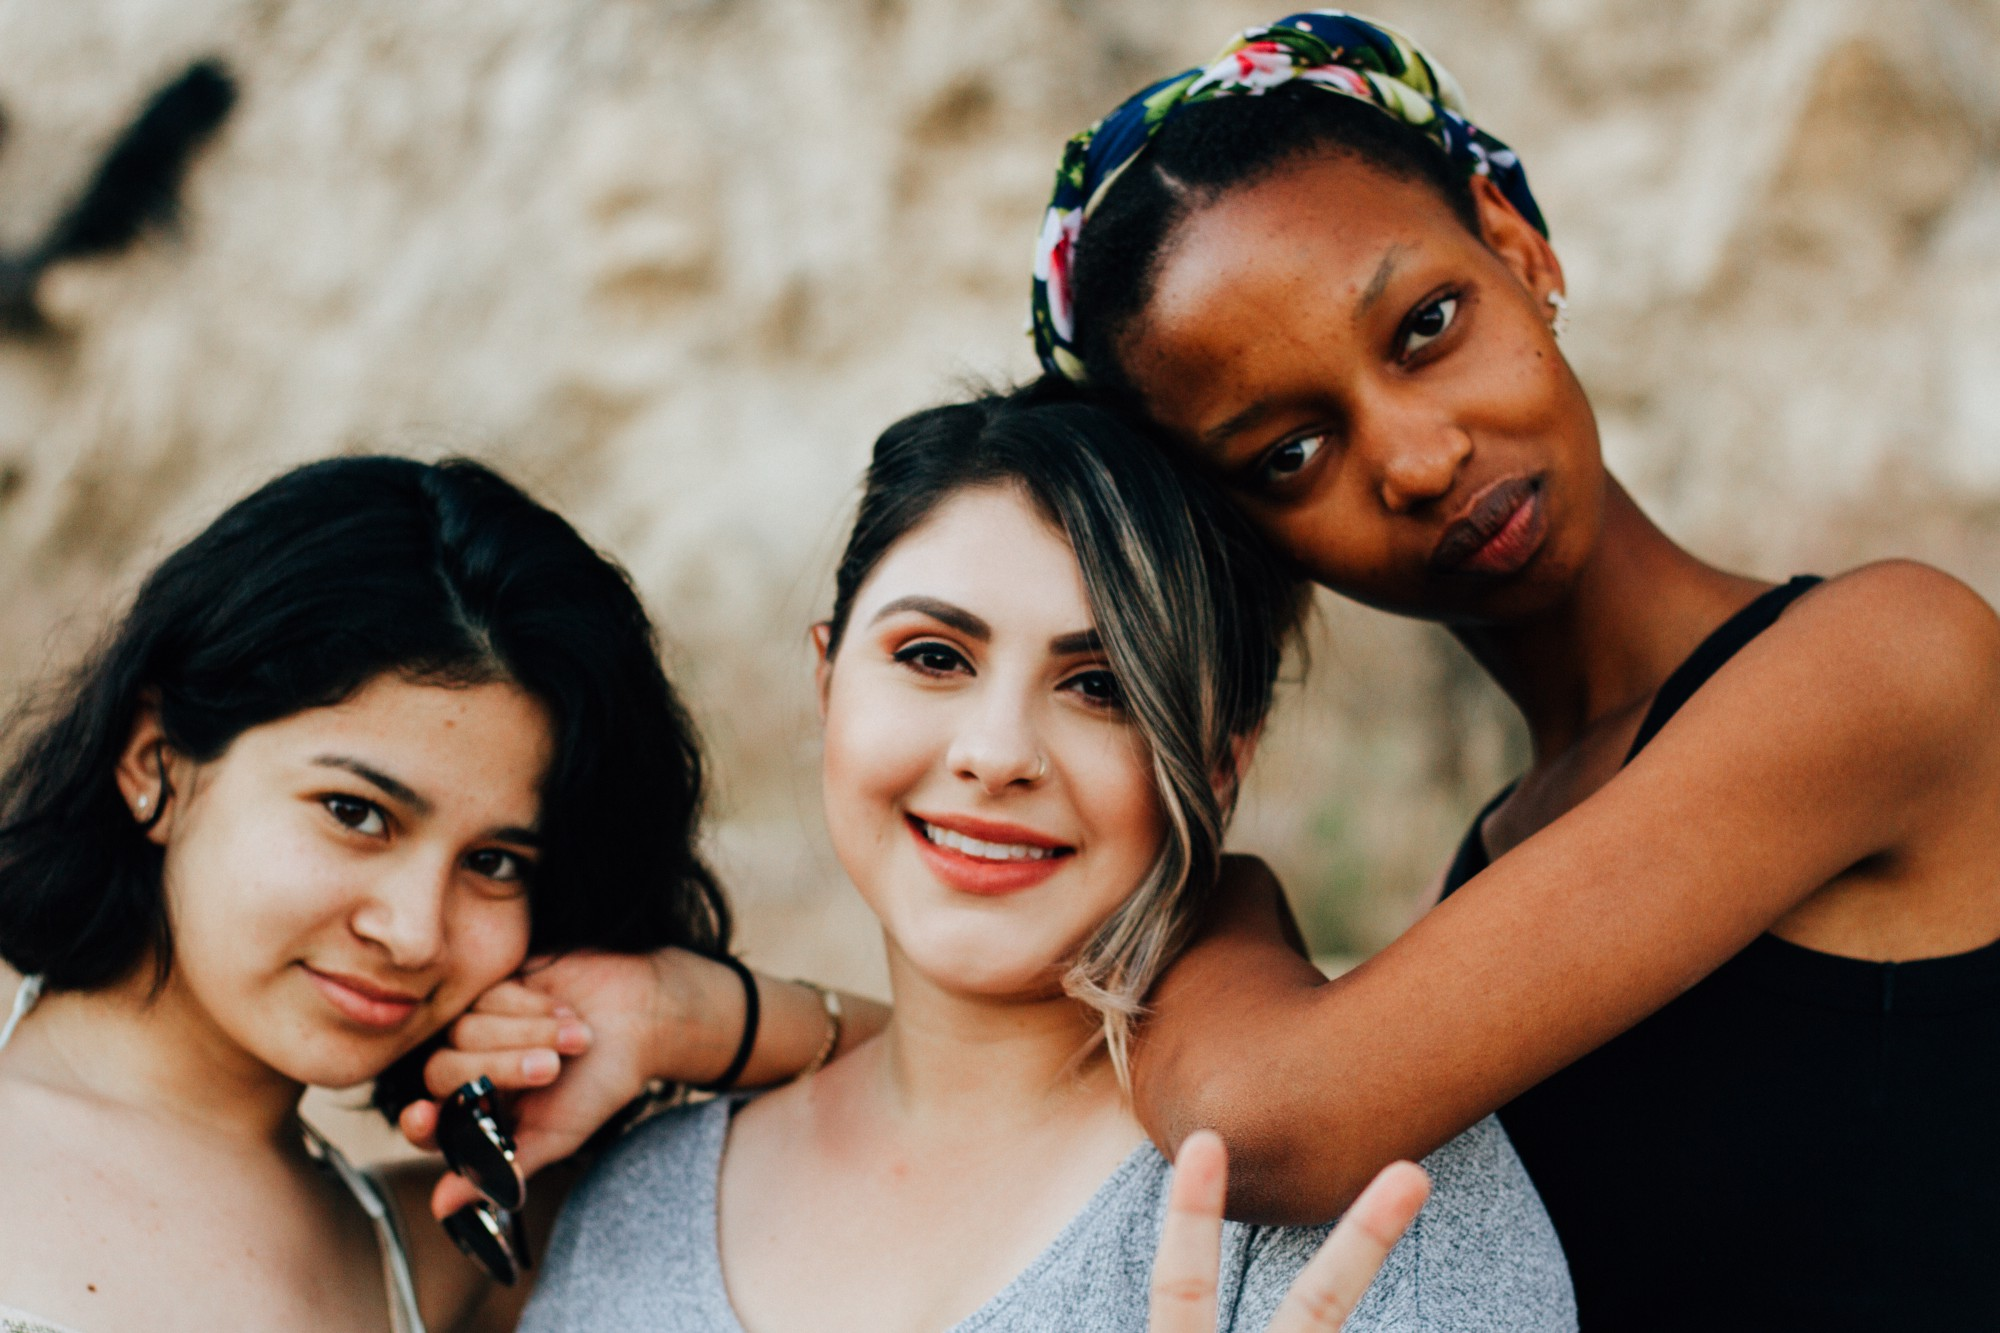 Three young women of different ethnicity.